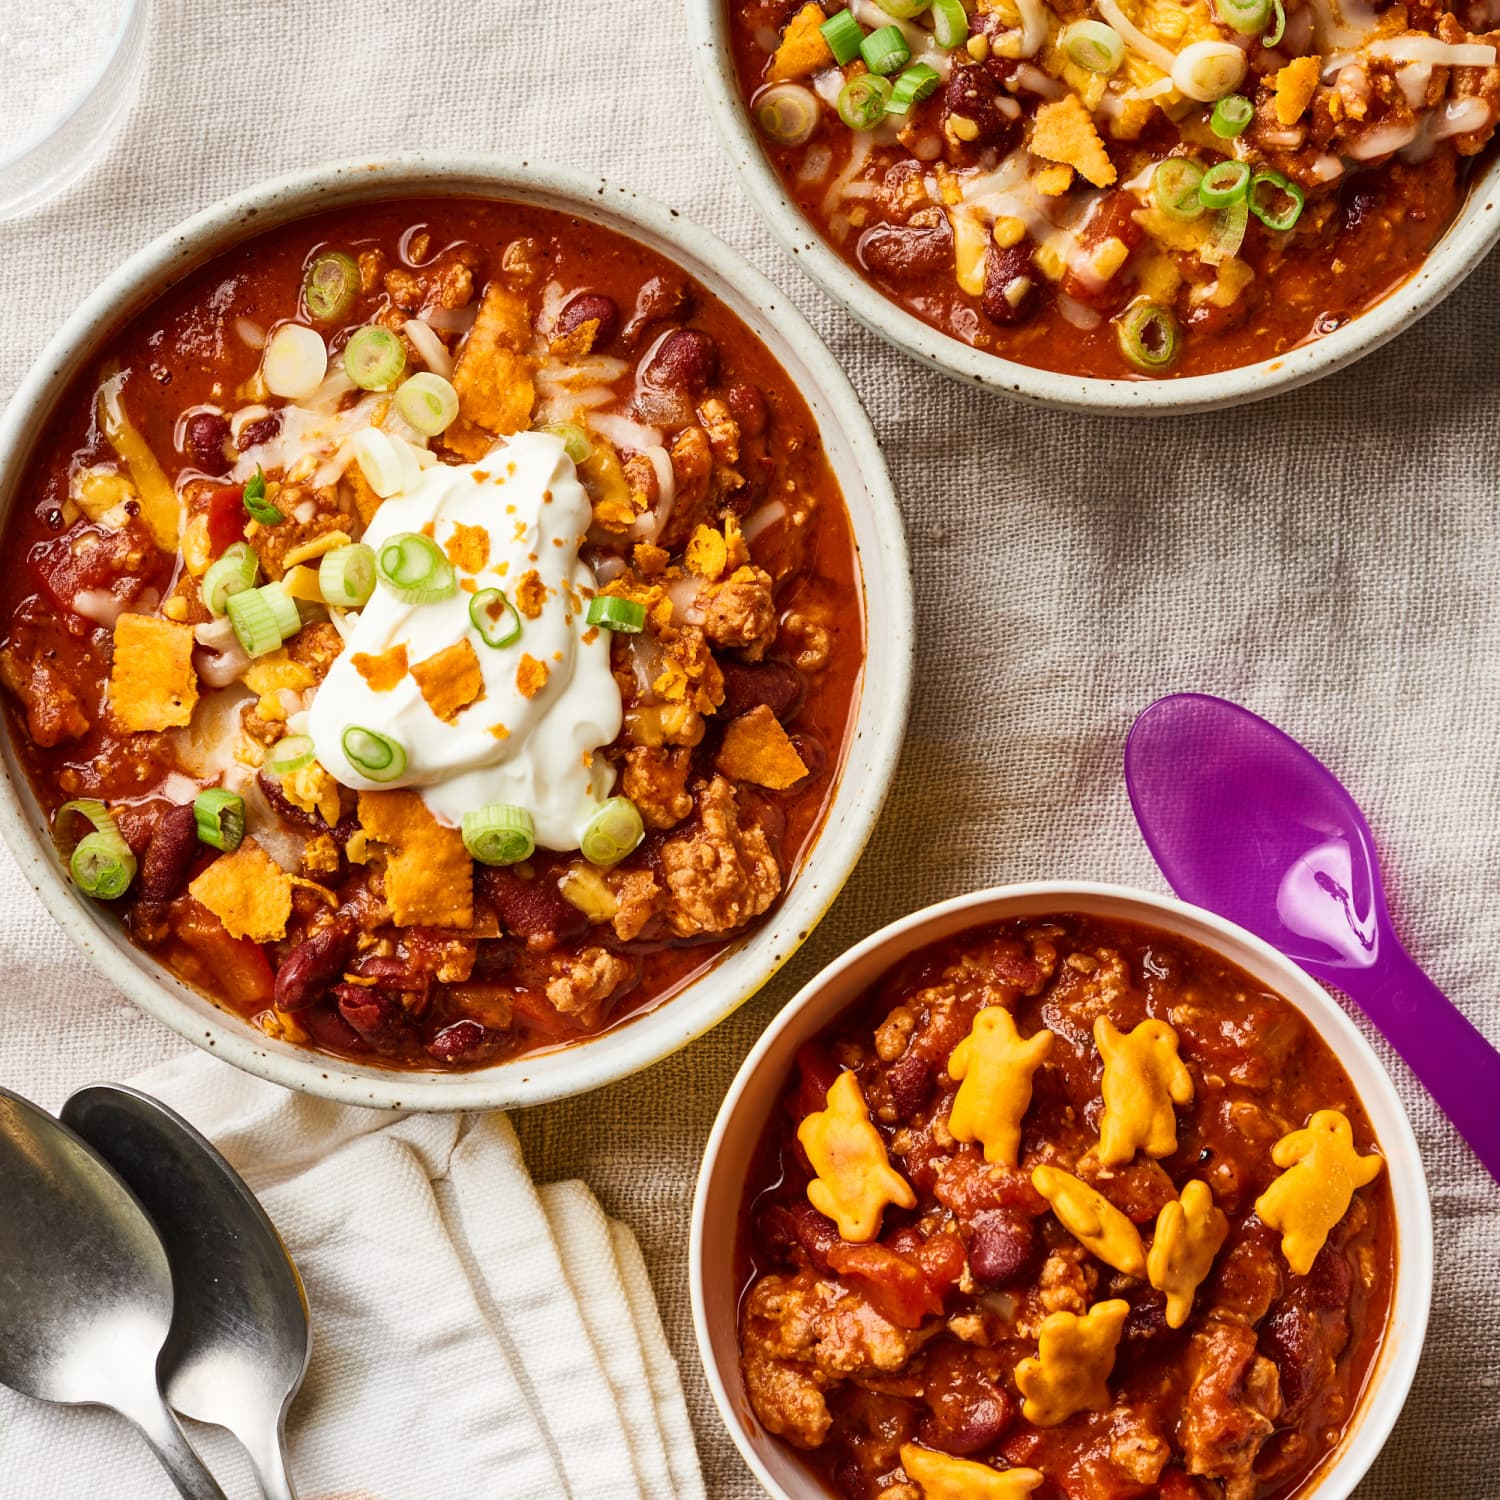 Cooking With Kids 15 Dinner Recipes Kids Can Help With Kitchn